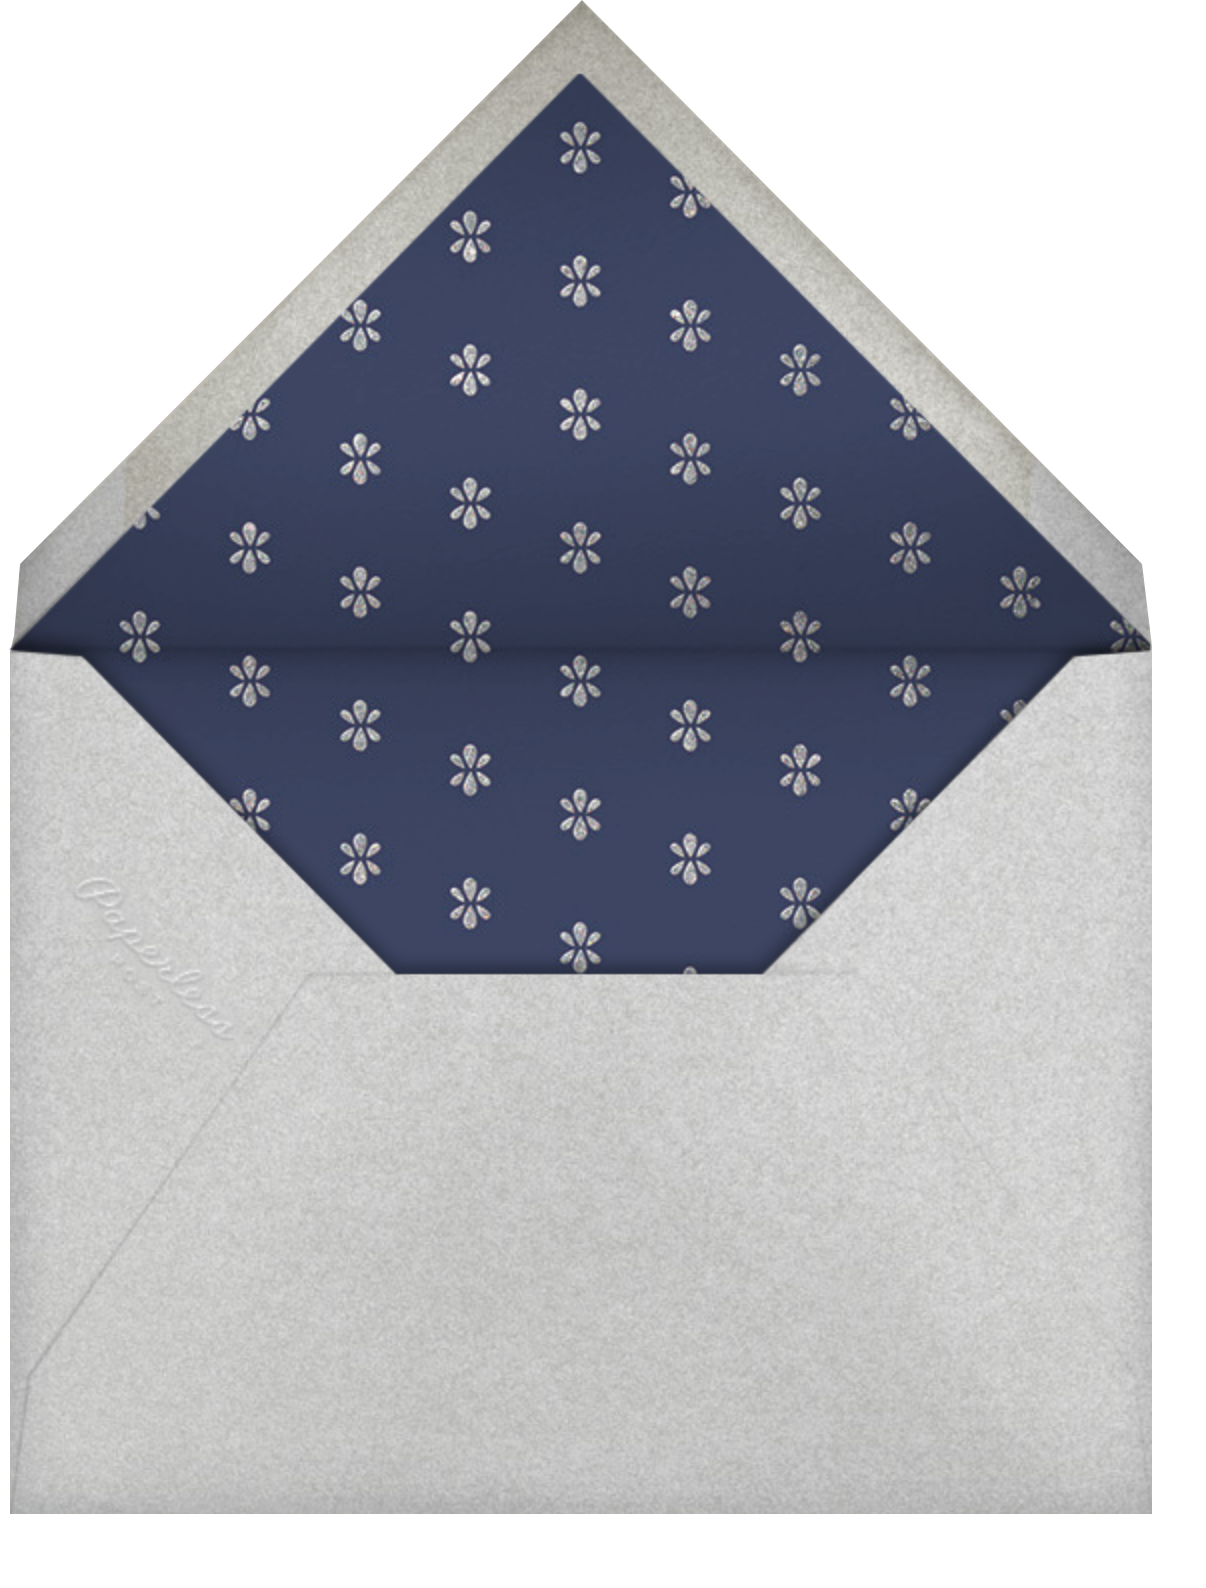 Ornate Occasion - Navy - Paperless Post - Envelope